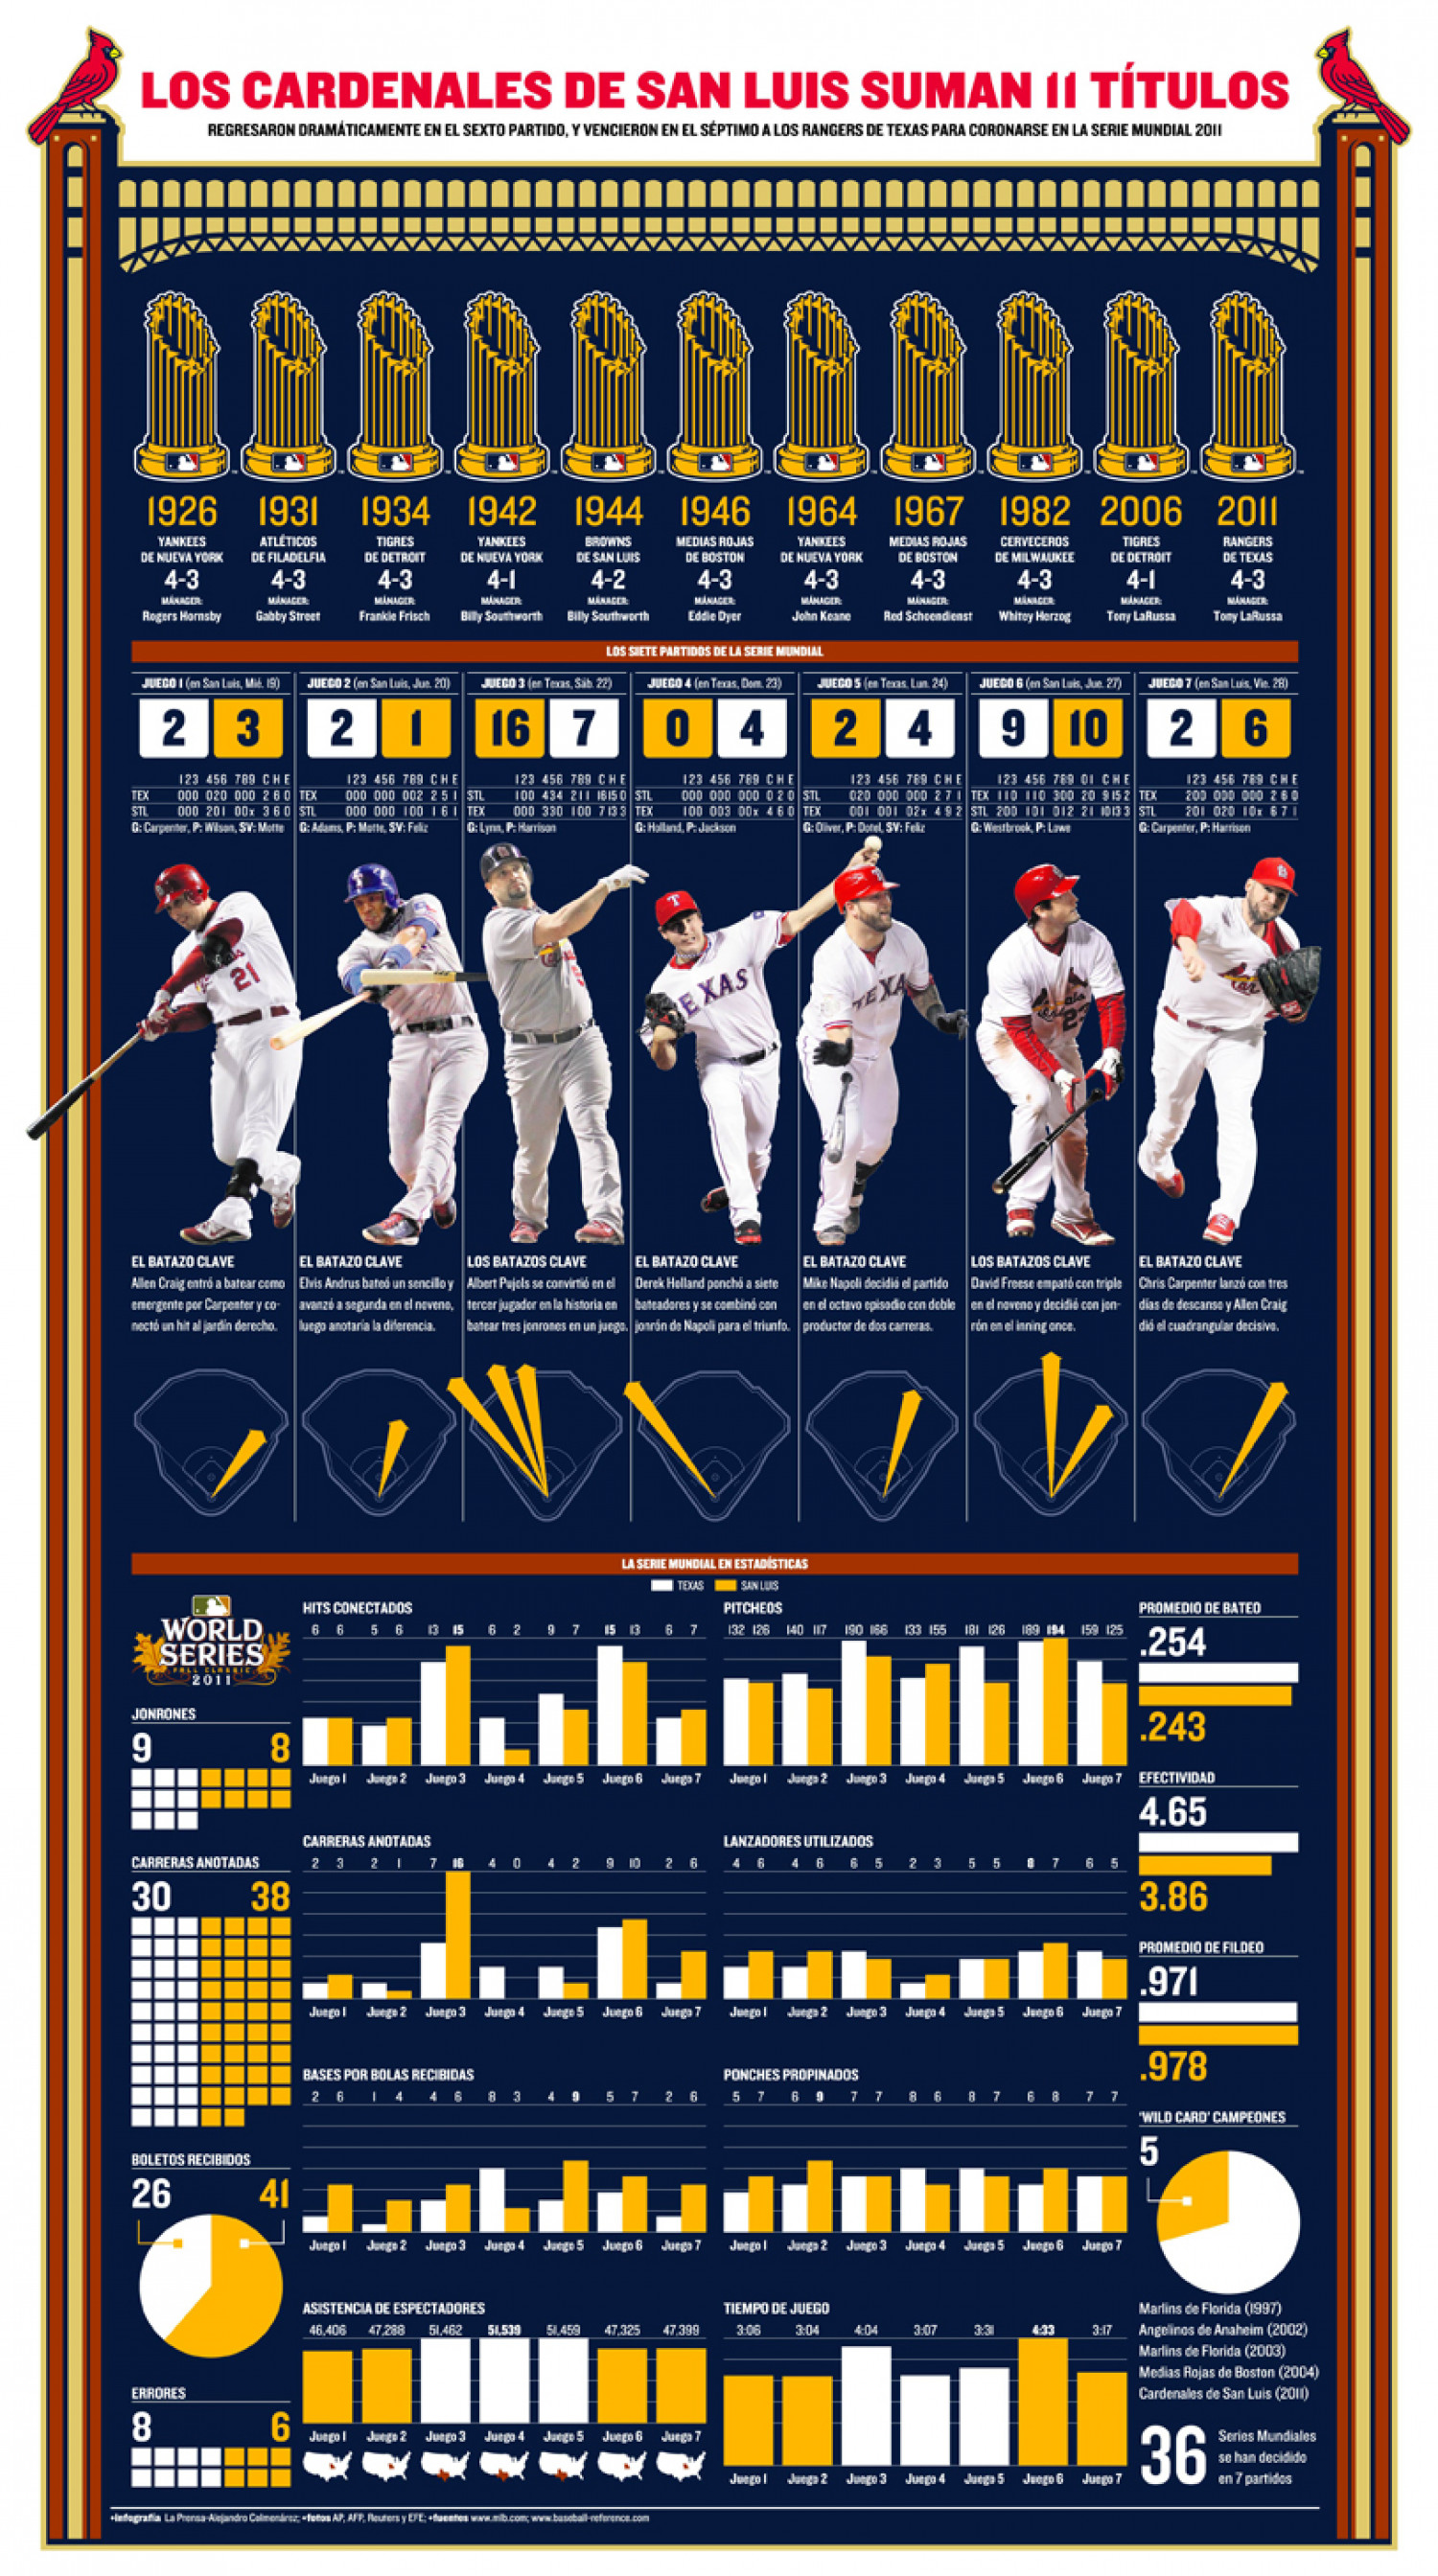 St. Louis Cardinals Infographic